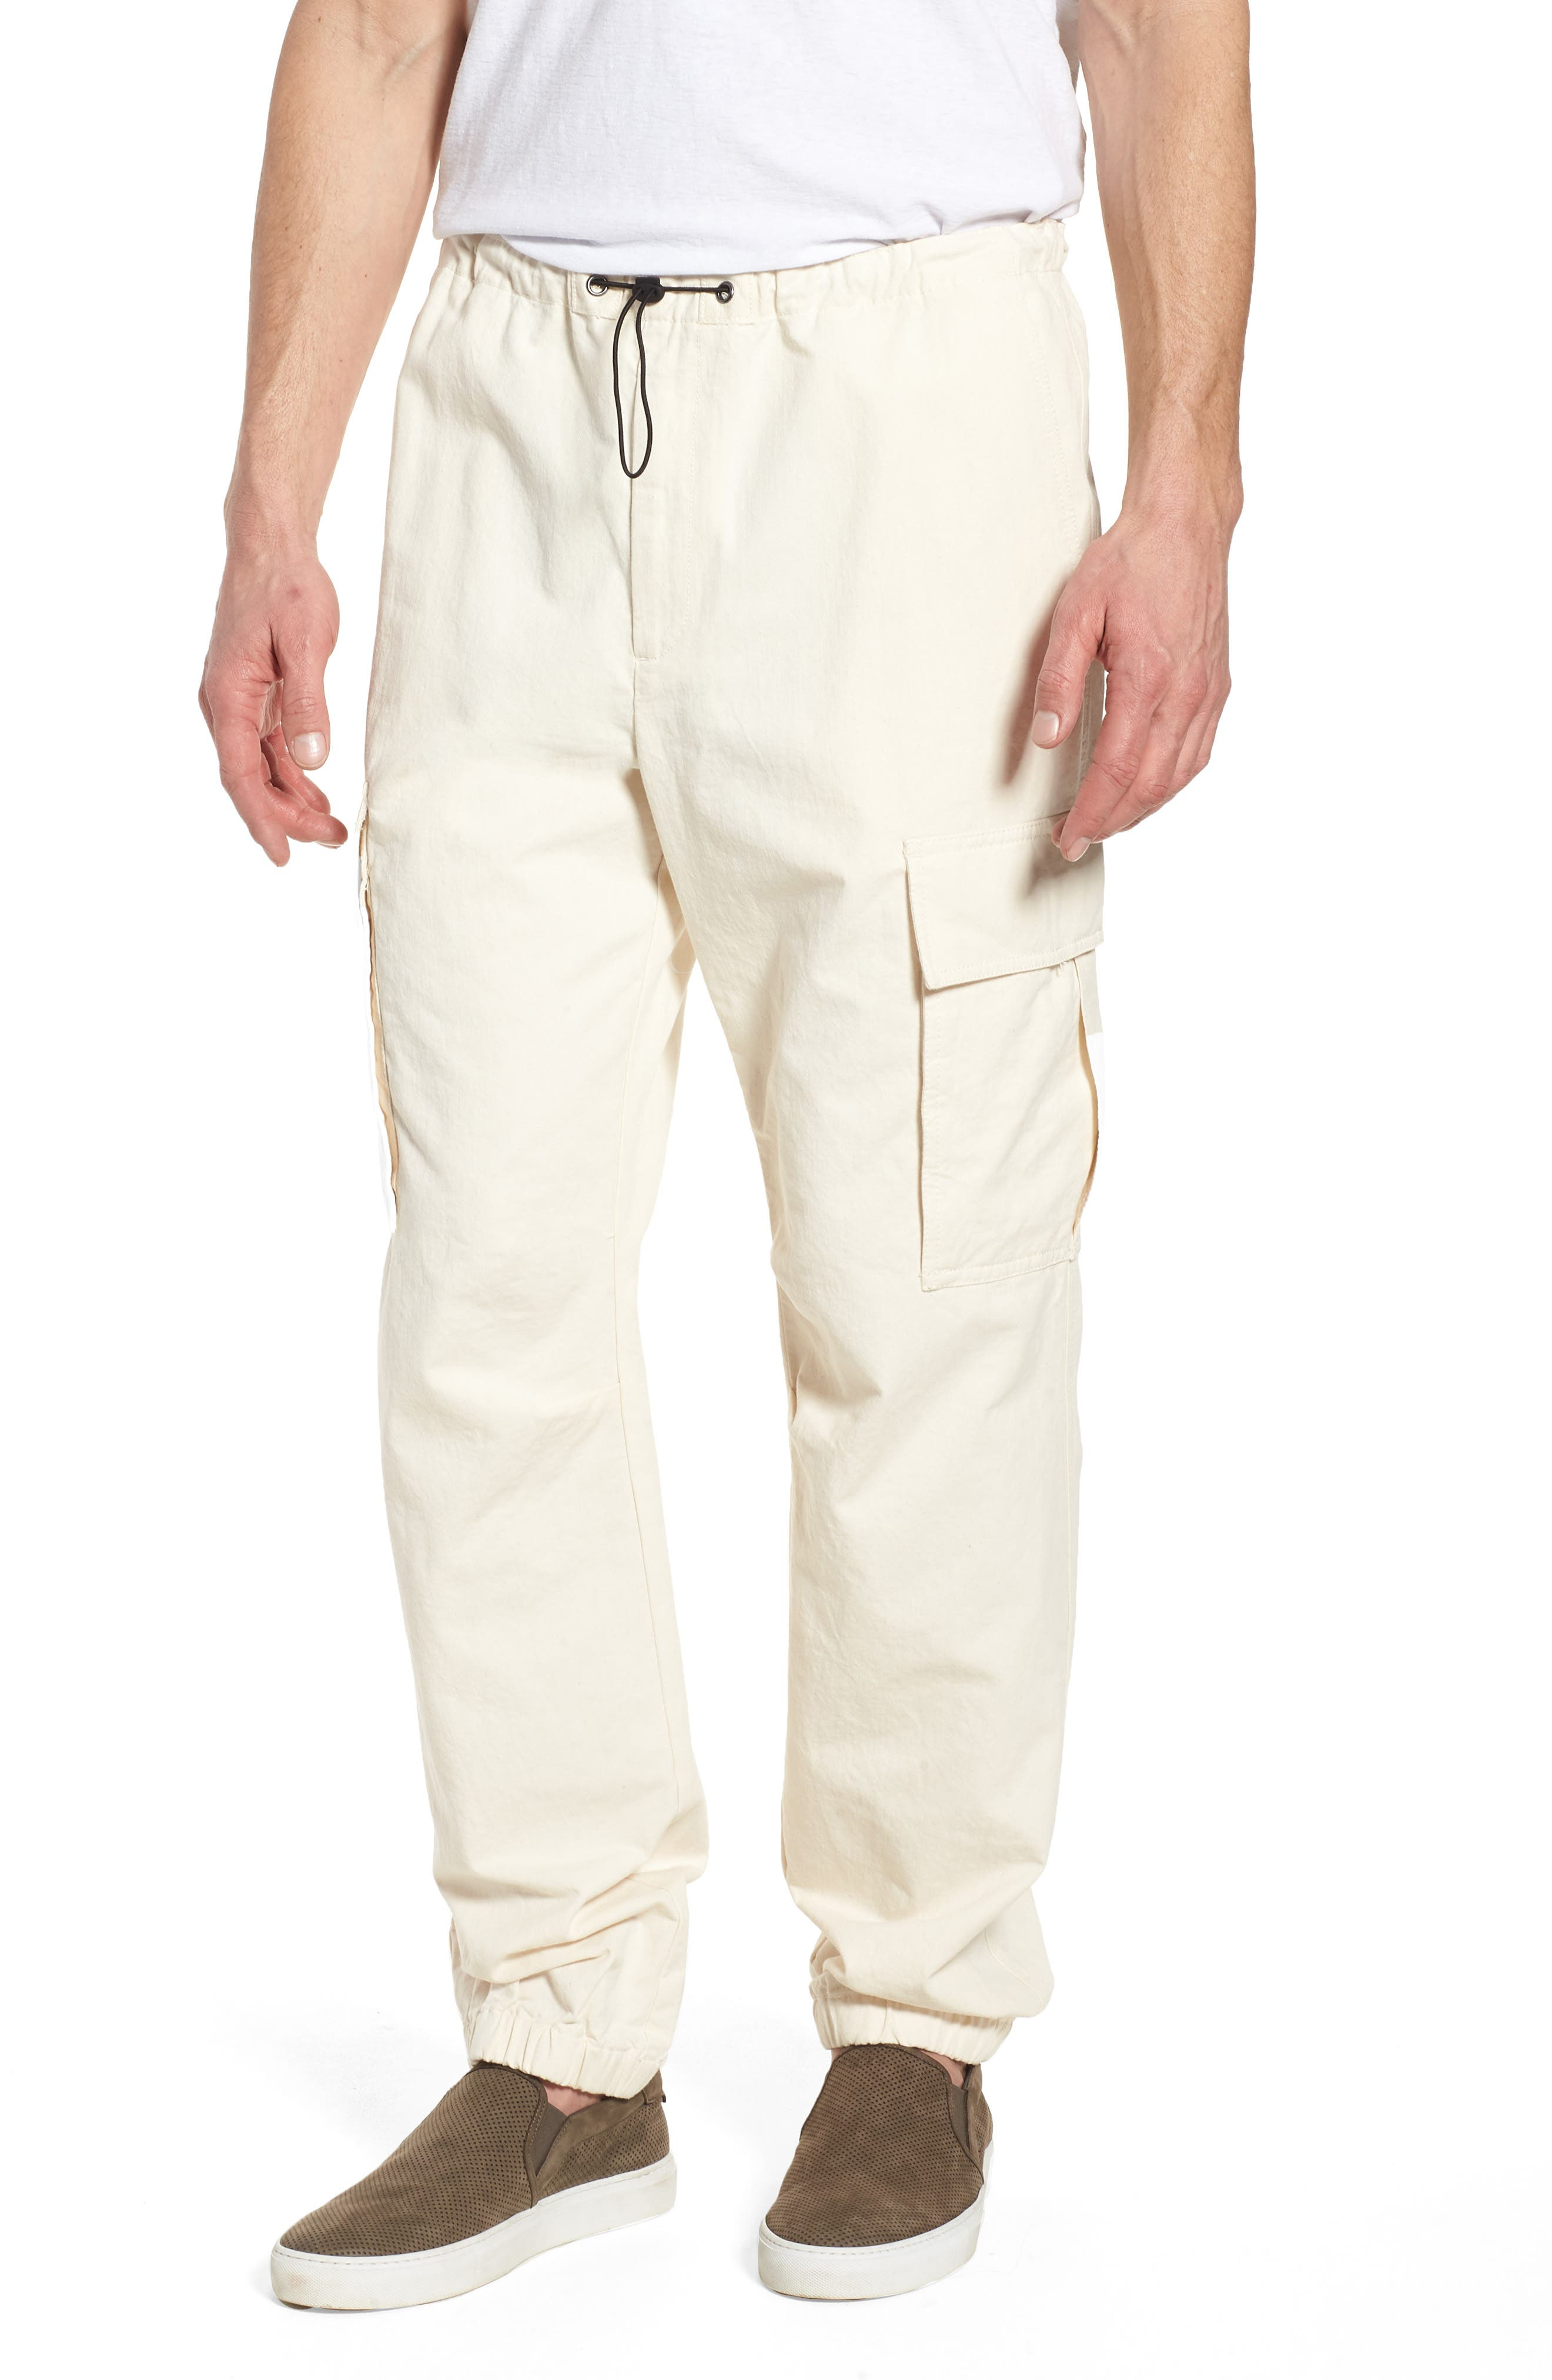 JAMES PERSE Cargo Pants, Main, color, IVORY